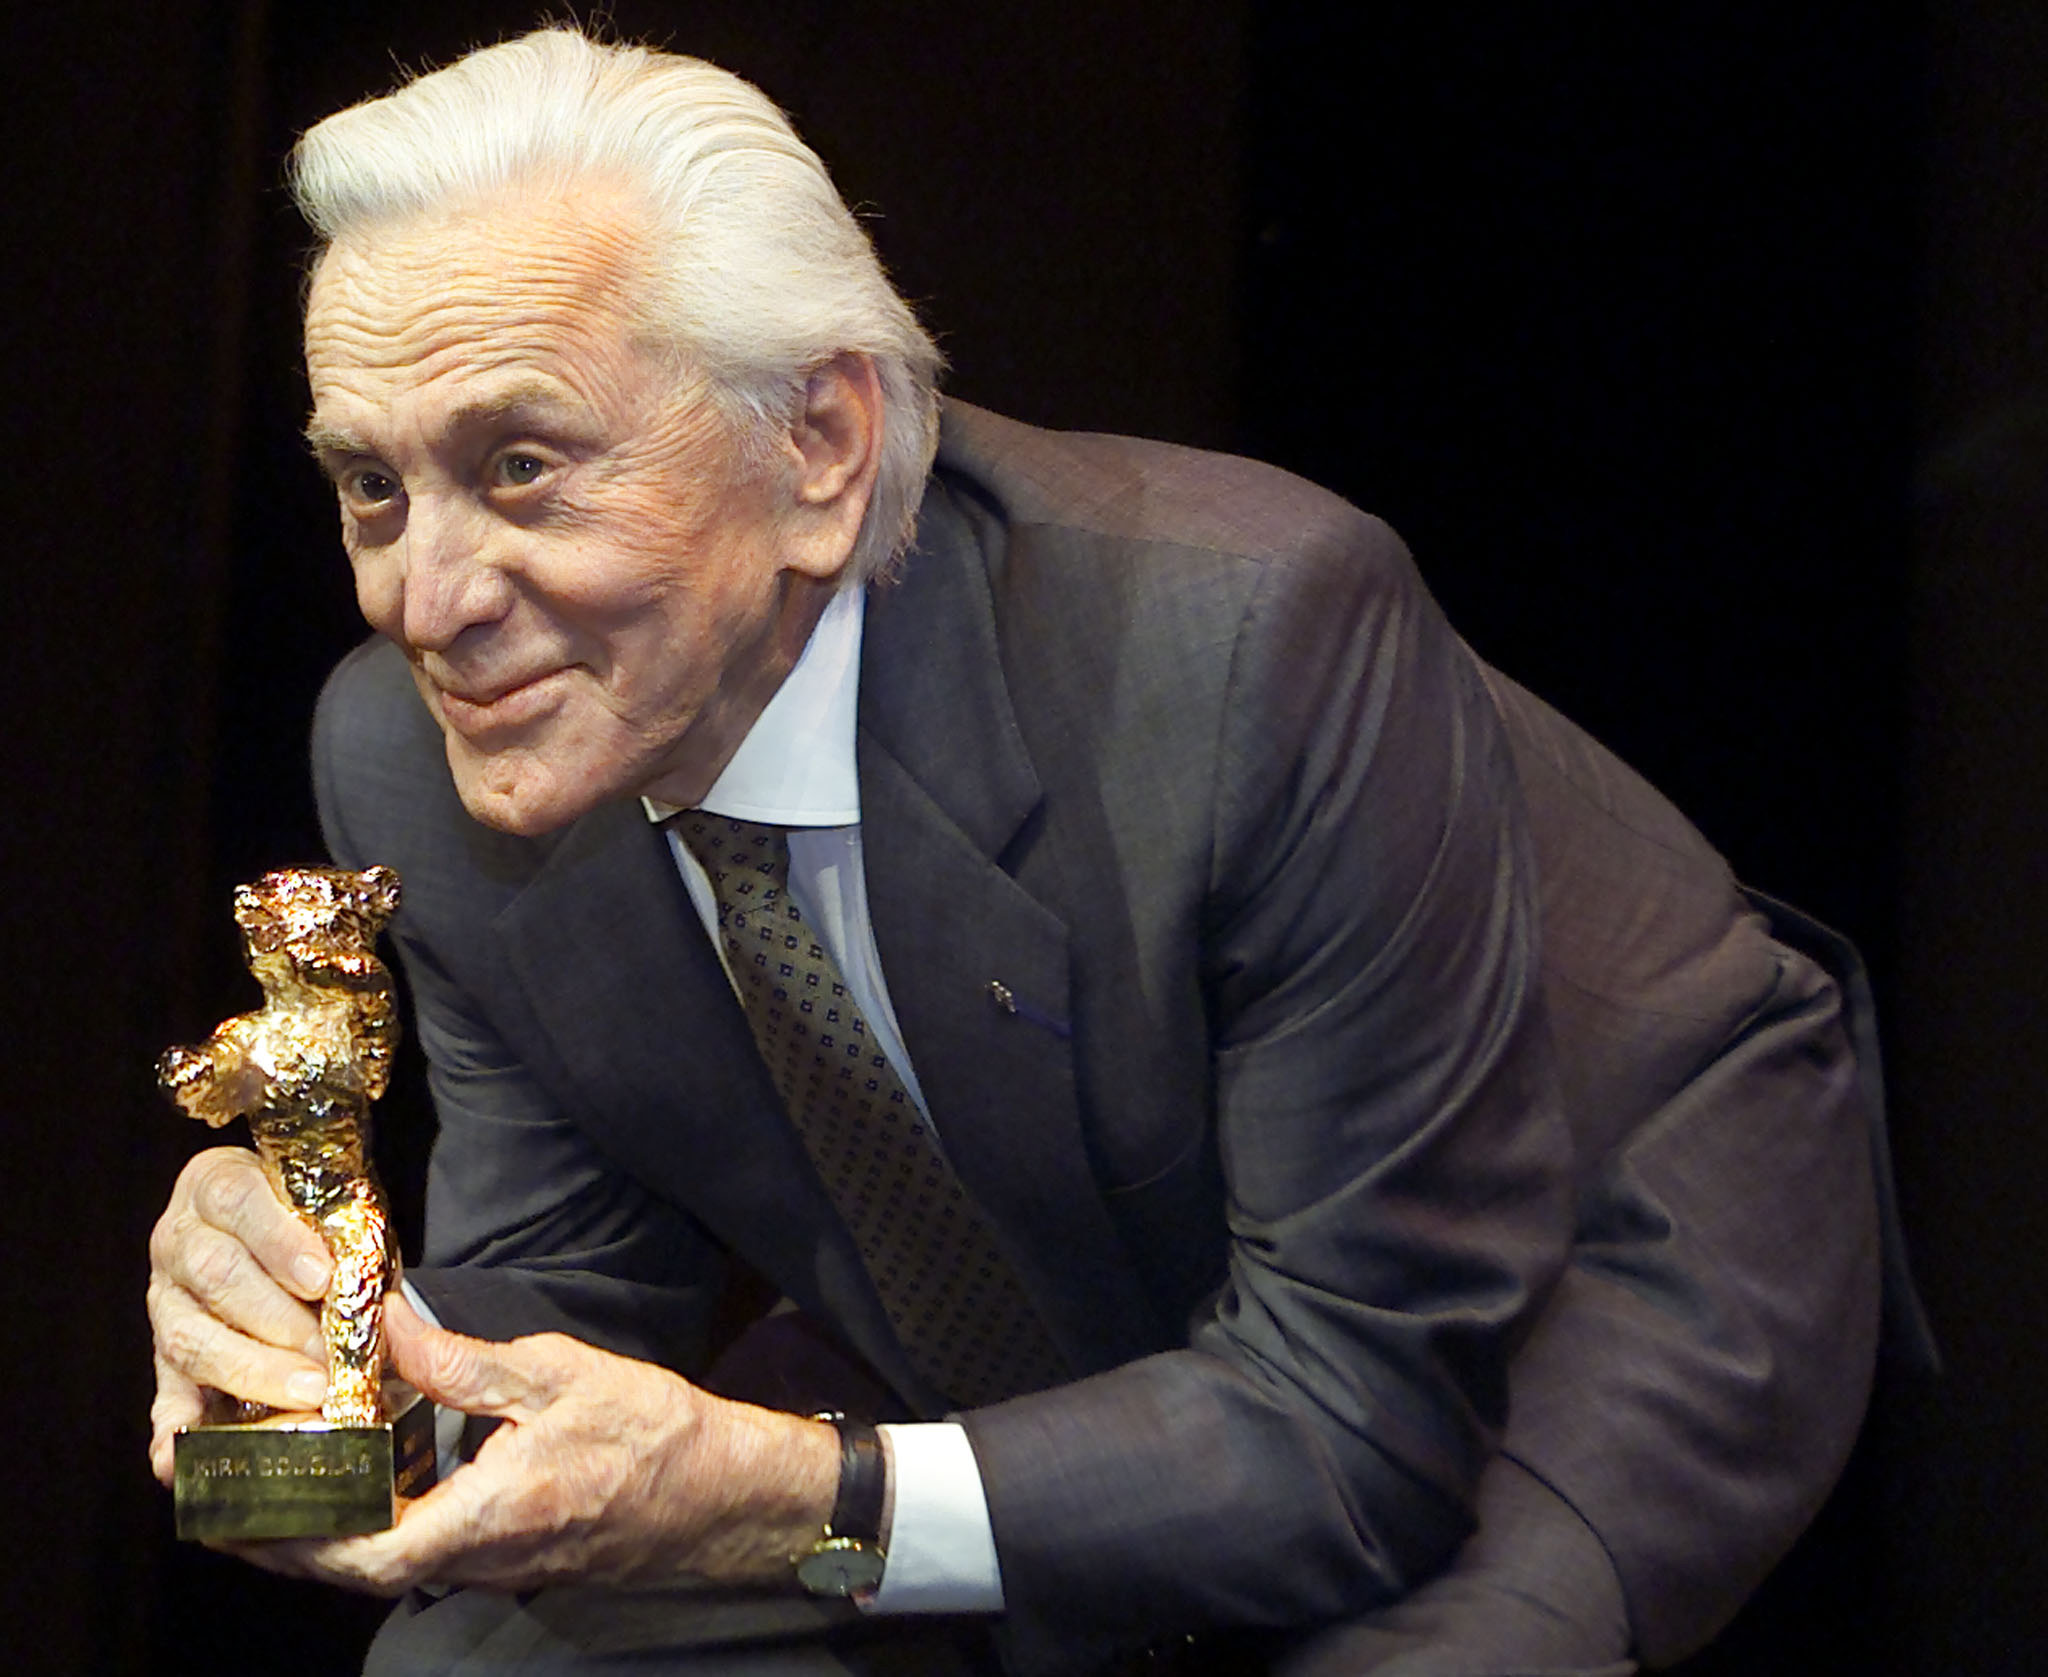 U.S. actor Kirk Douglas bends down as he poses with his Golden Bear for the media during an awards ceremony at the 51st Berlinale International Film Festival in Berlin February 16, 2001.  Douglas received the Golden Bear award for his lifetime achievements. - RTXKB94